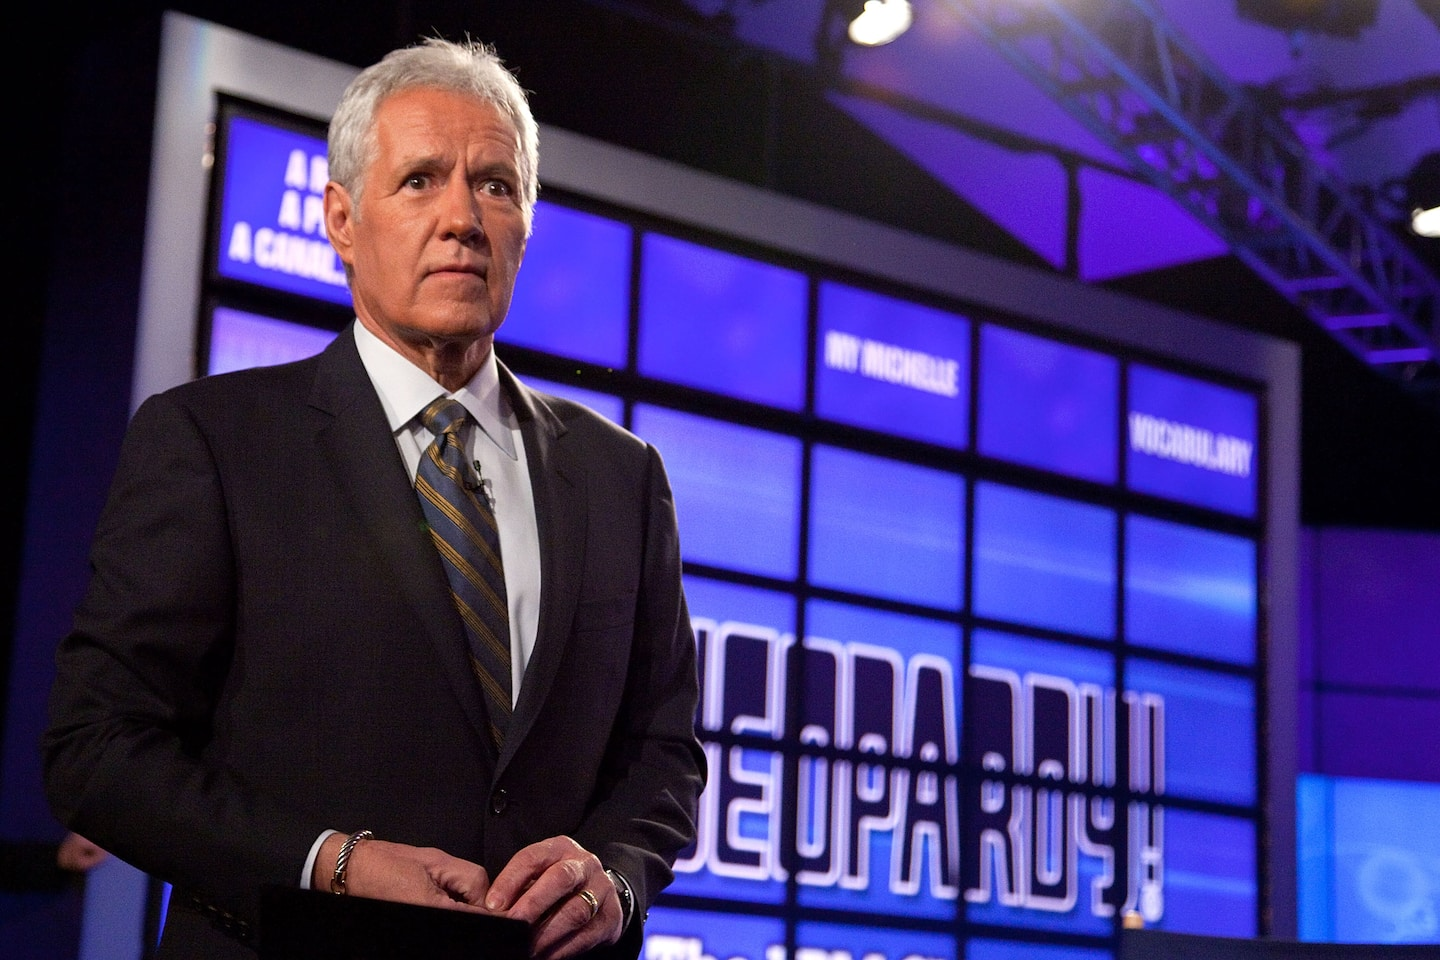 Alex Trebek maintained a safe space for intelligence even in the dumbest and darkest of times